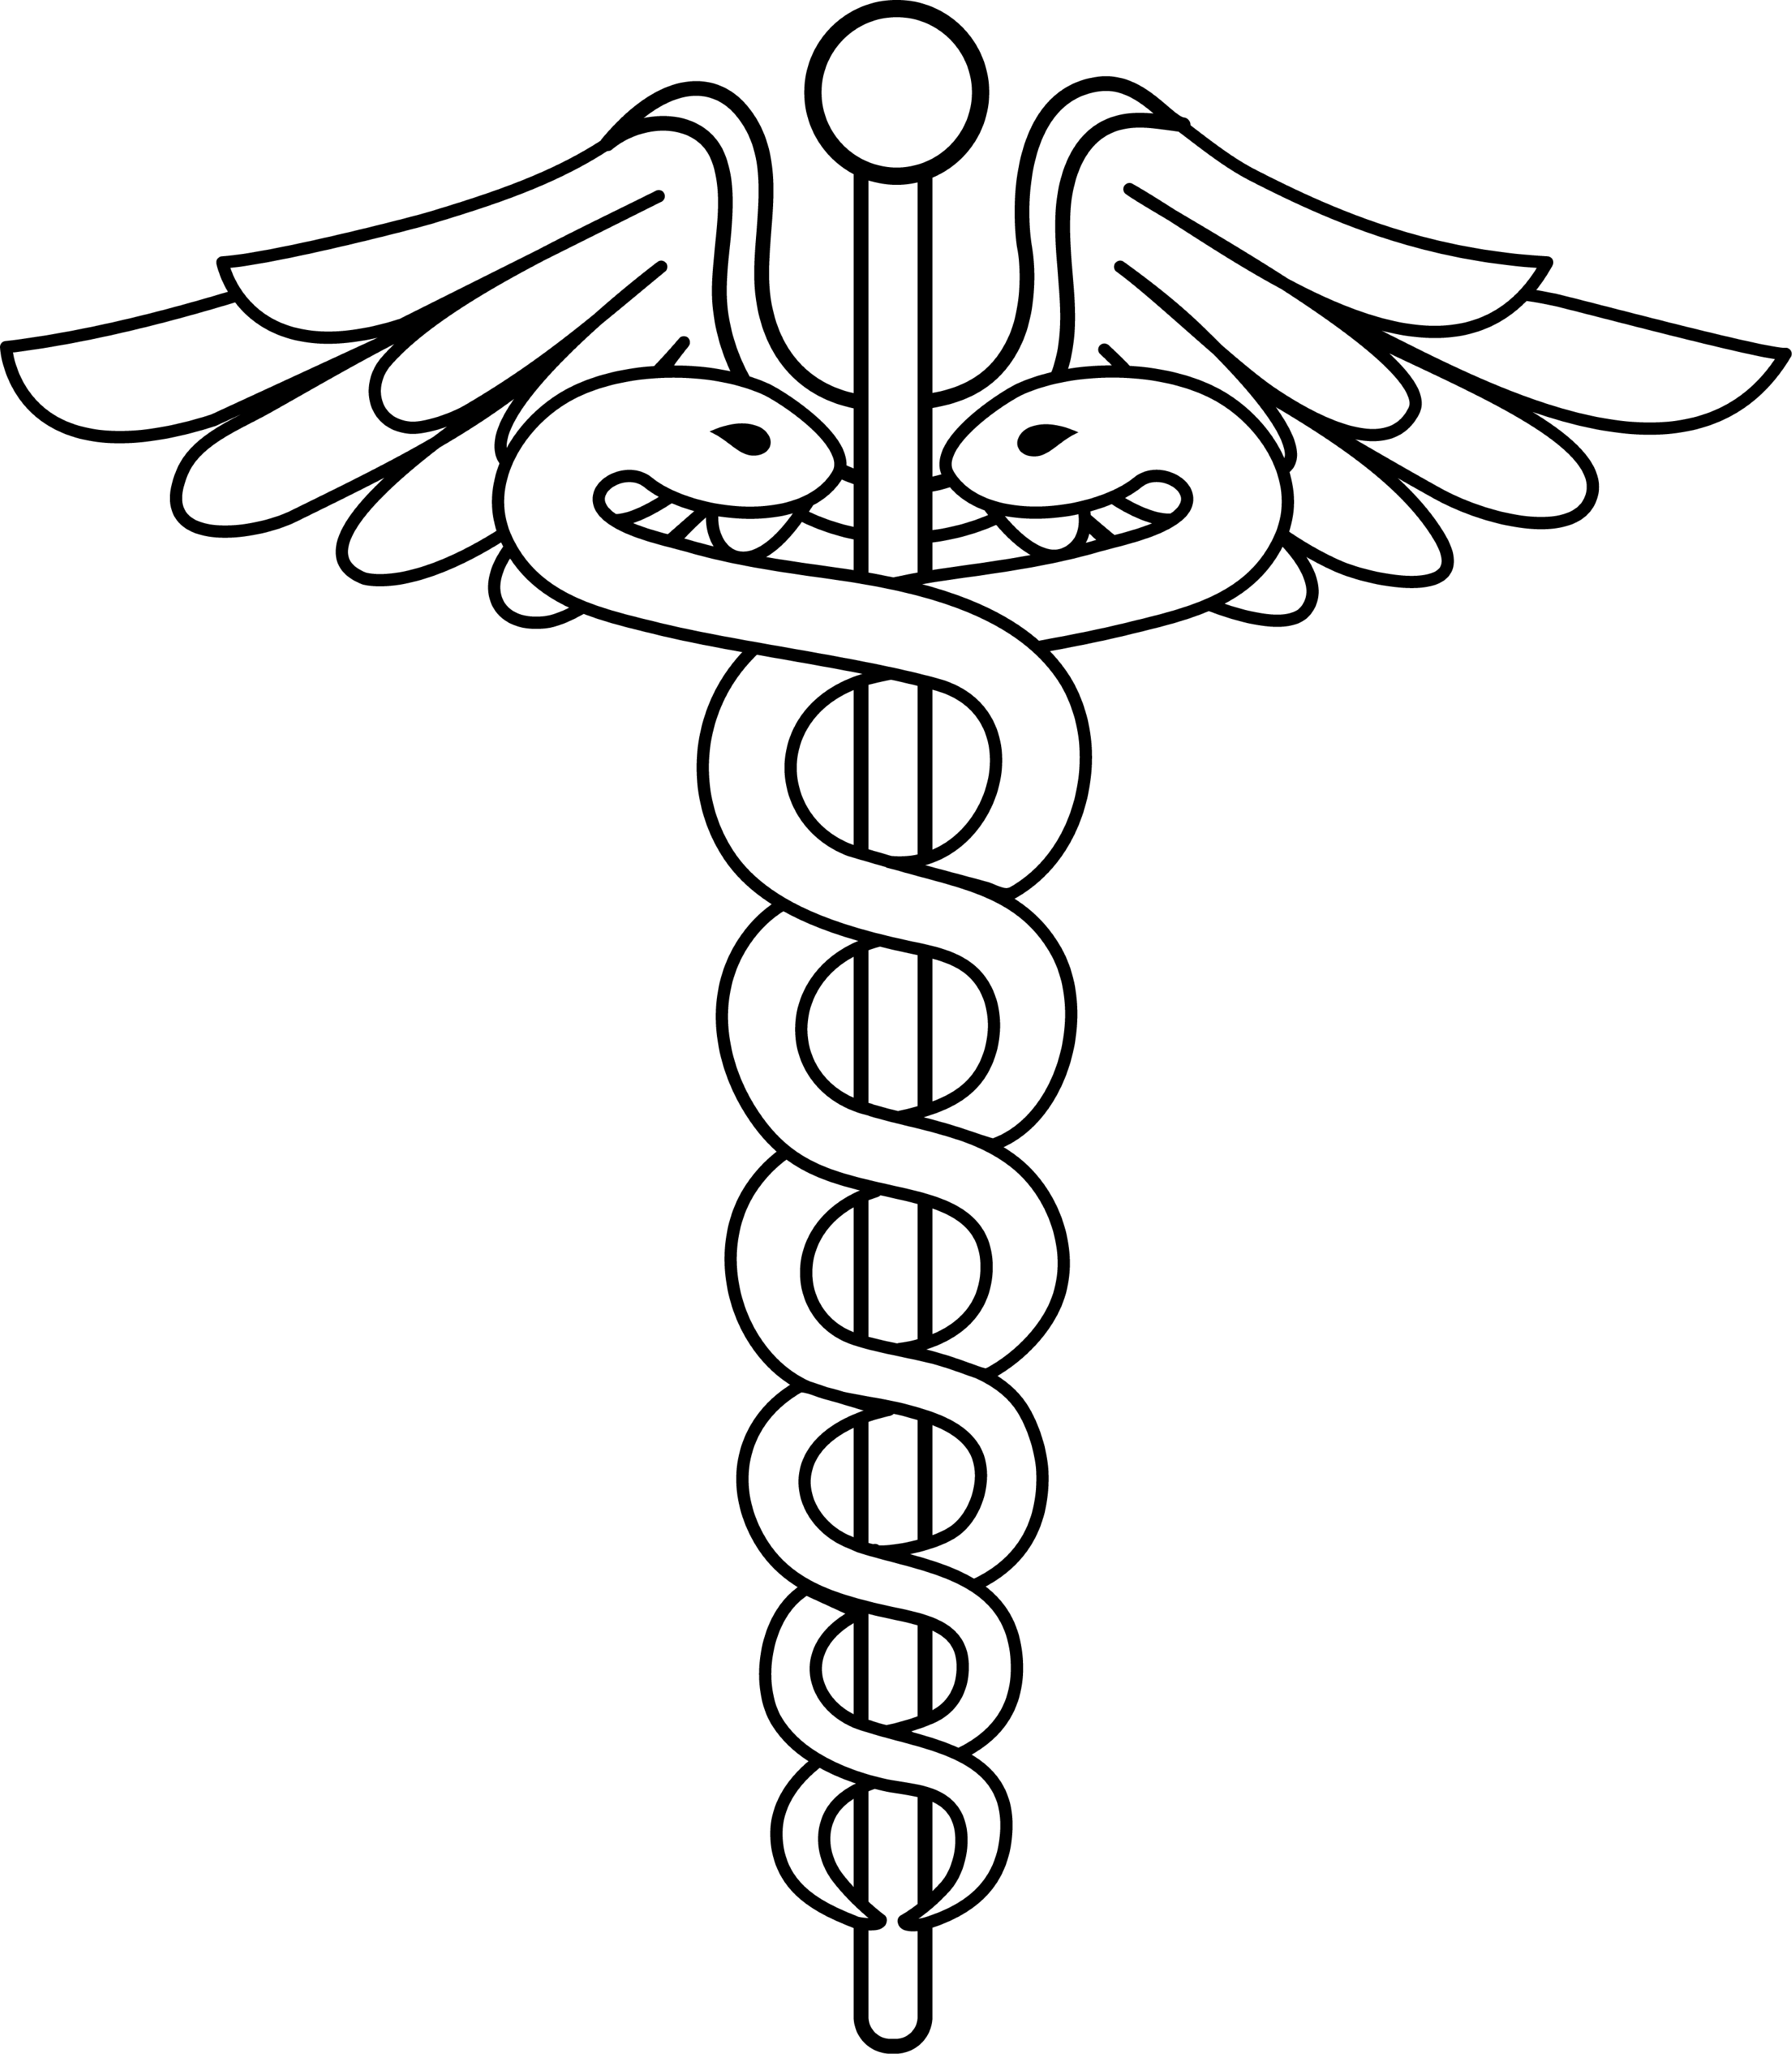 Black and White Line Art of Caduceus - Free Clip Art